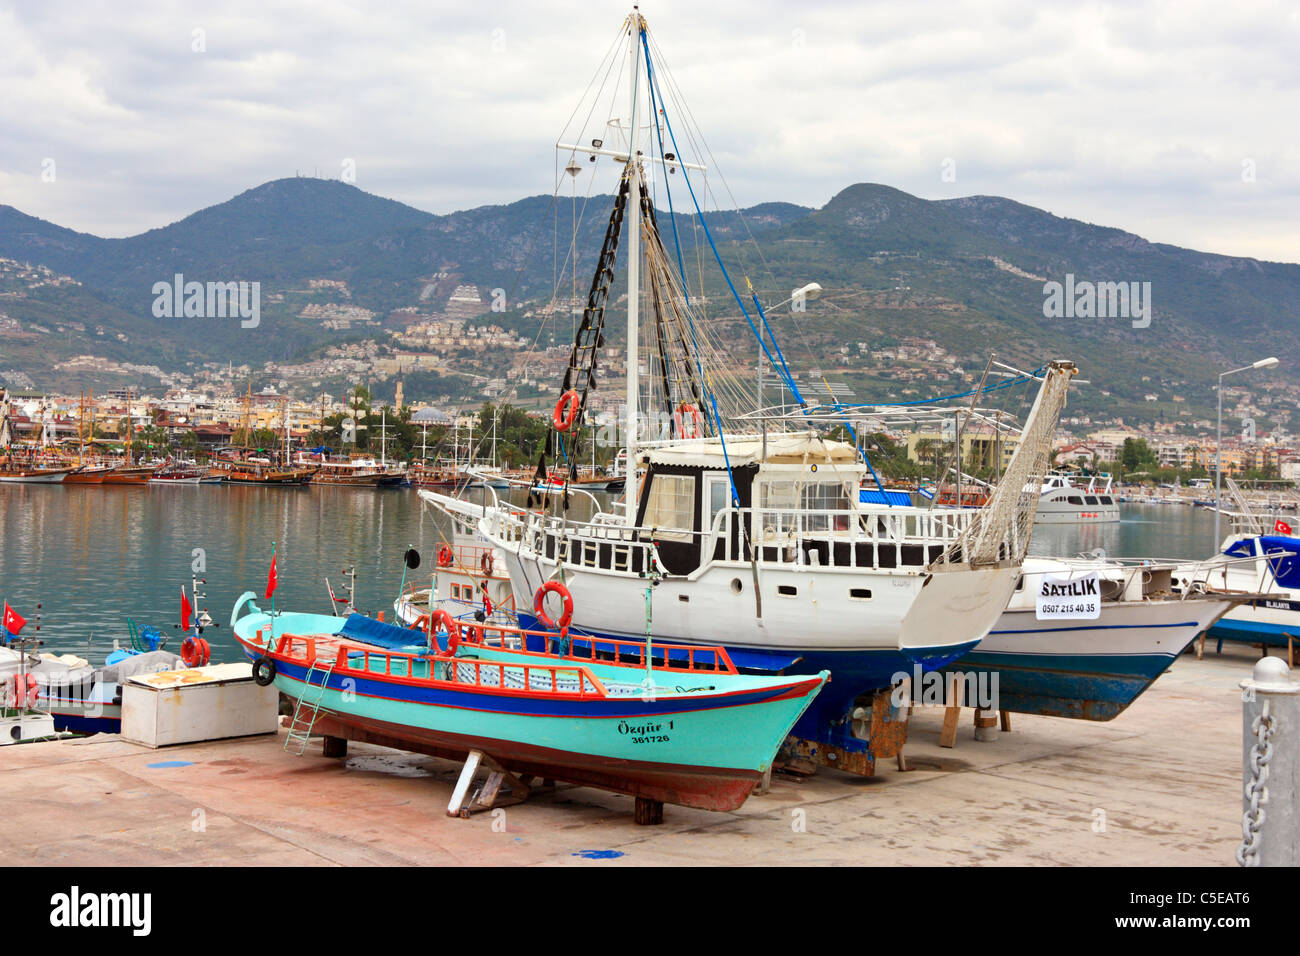 Fishing Boats Ashore for Overhaul in Alanya, Turkey Stock Photo